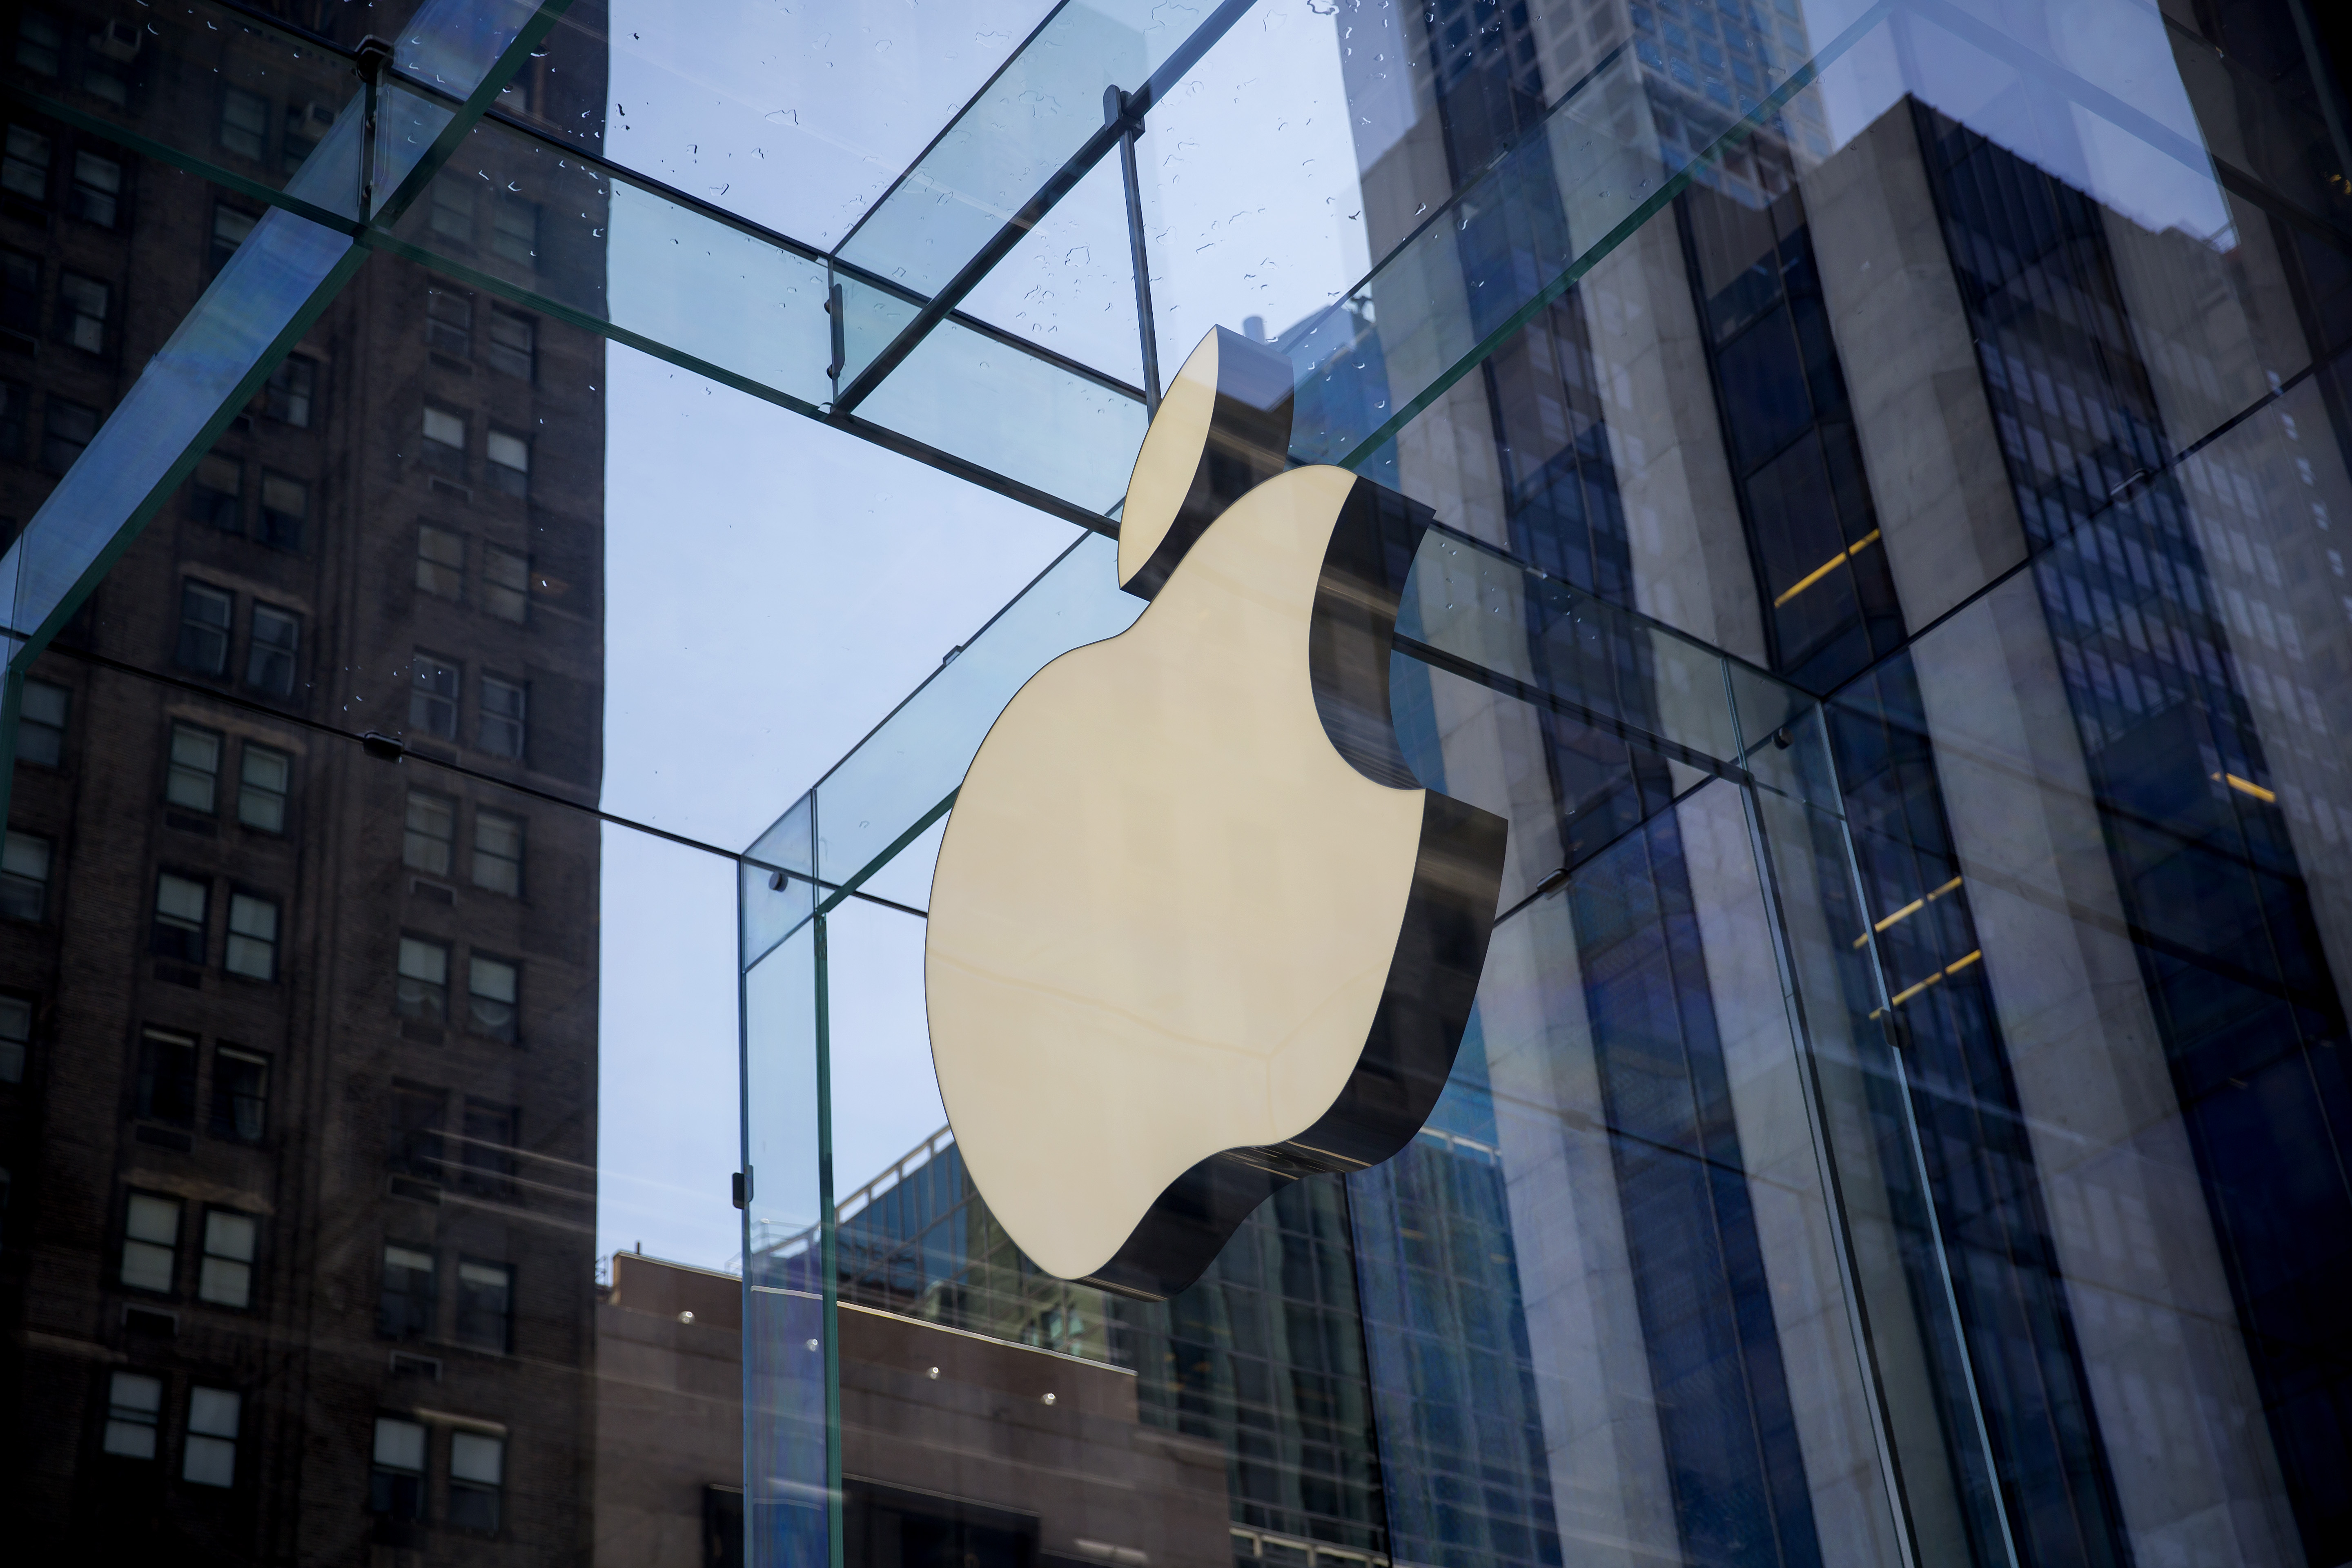 Apple Inc. Set For Biggest Pivot In History As R&D Spending Suggests Huge Bet On 'Project Titan' Electric Car